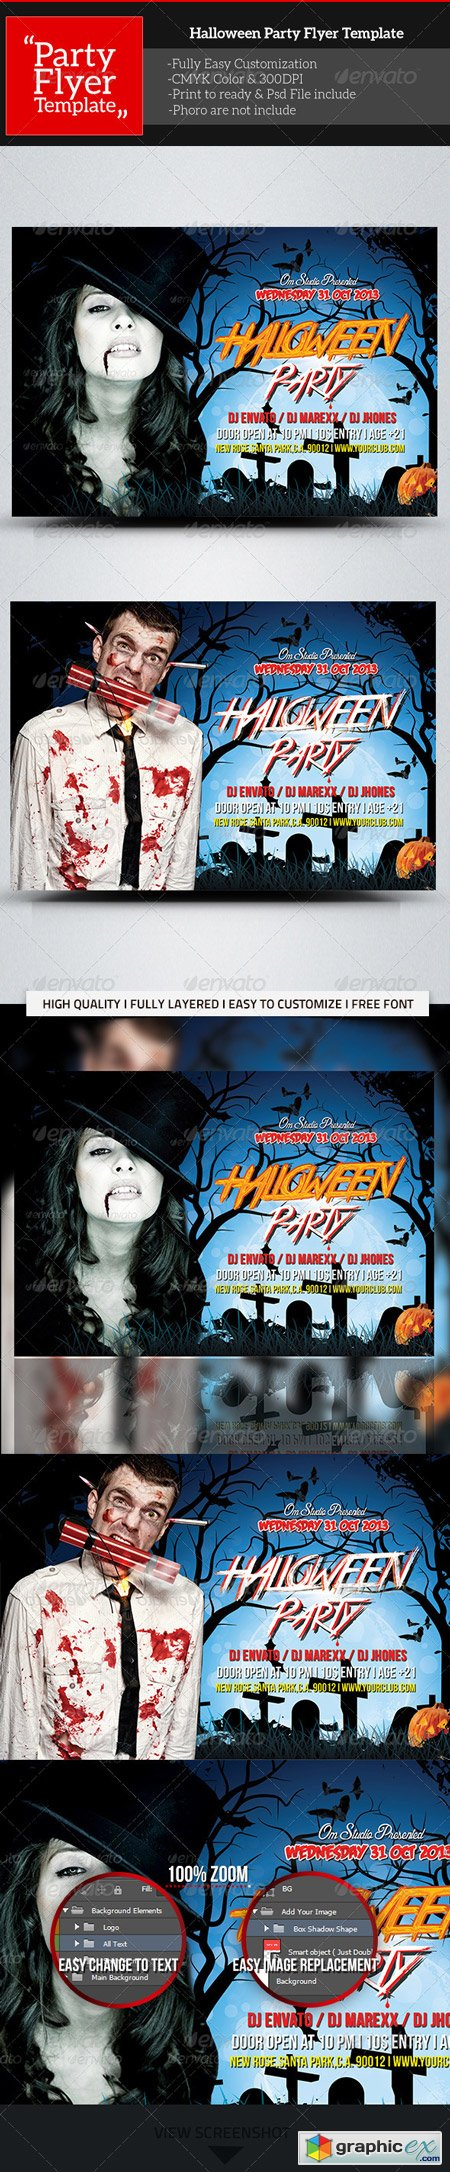 Halloween Party Flyer Template 5740598